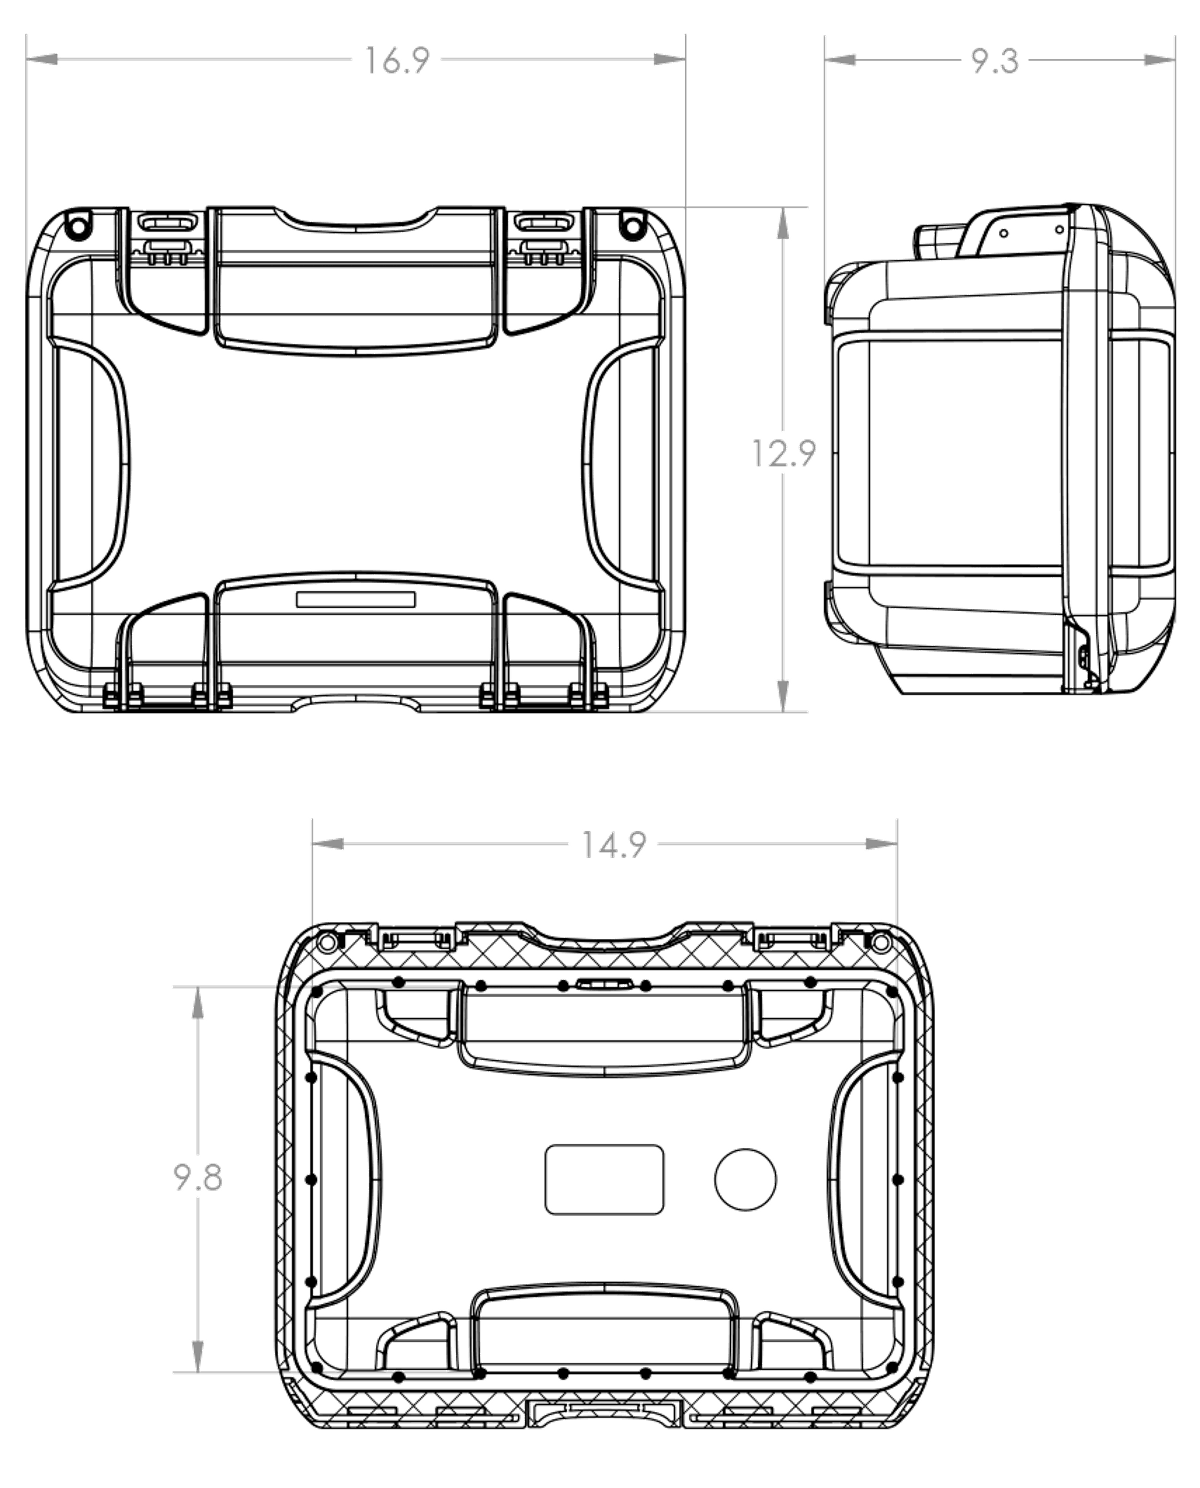 Dimensions of the Nanuk 918 Hard Case